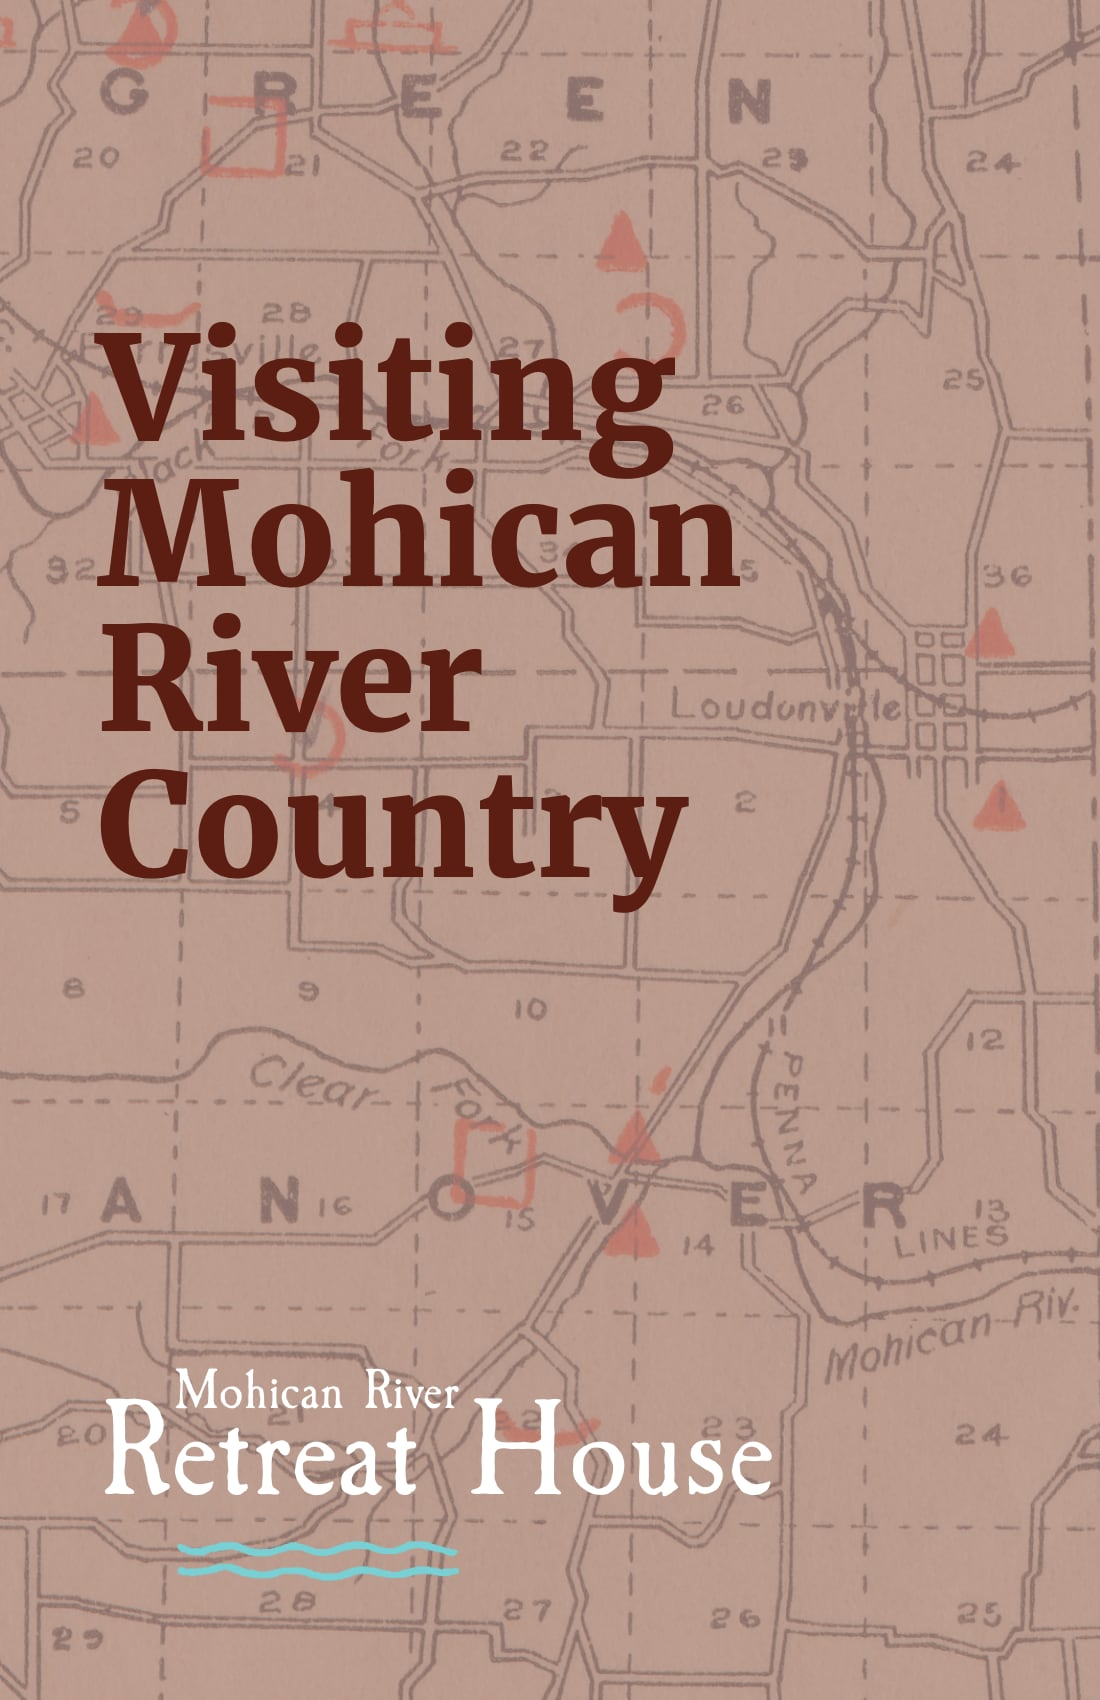 Visiting Mohican River Country